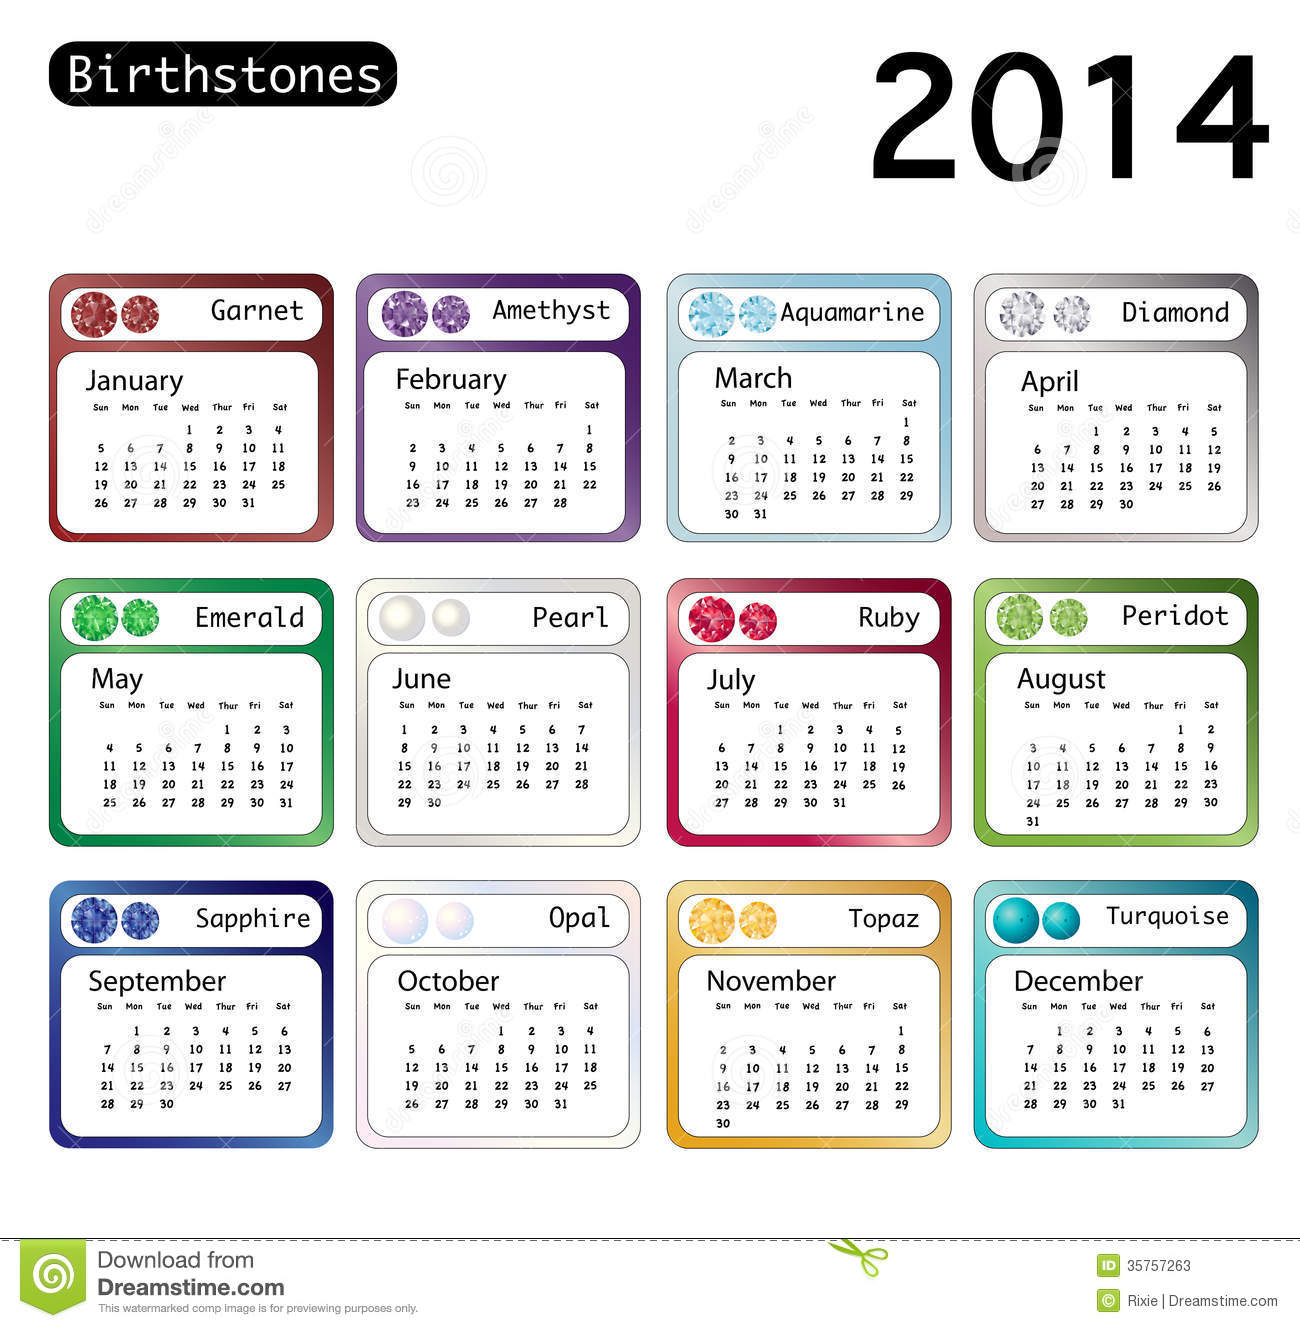 Calendar Quotes For Each Day : Birthstone calendar stock illustration image of